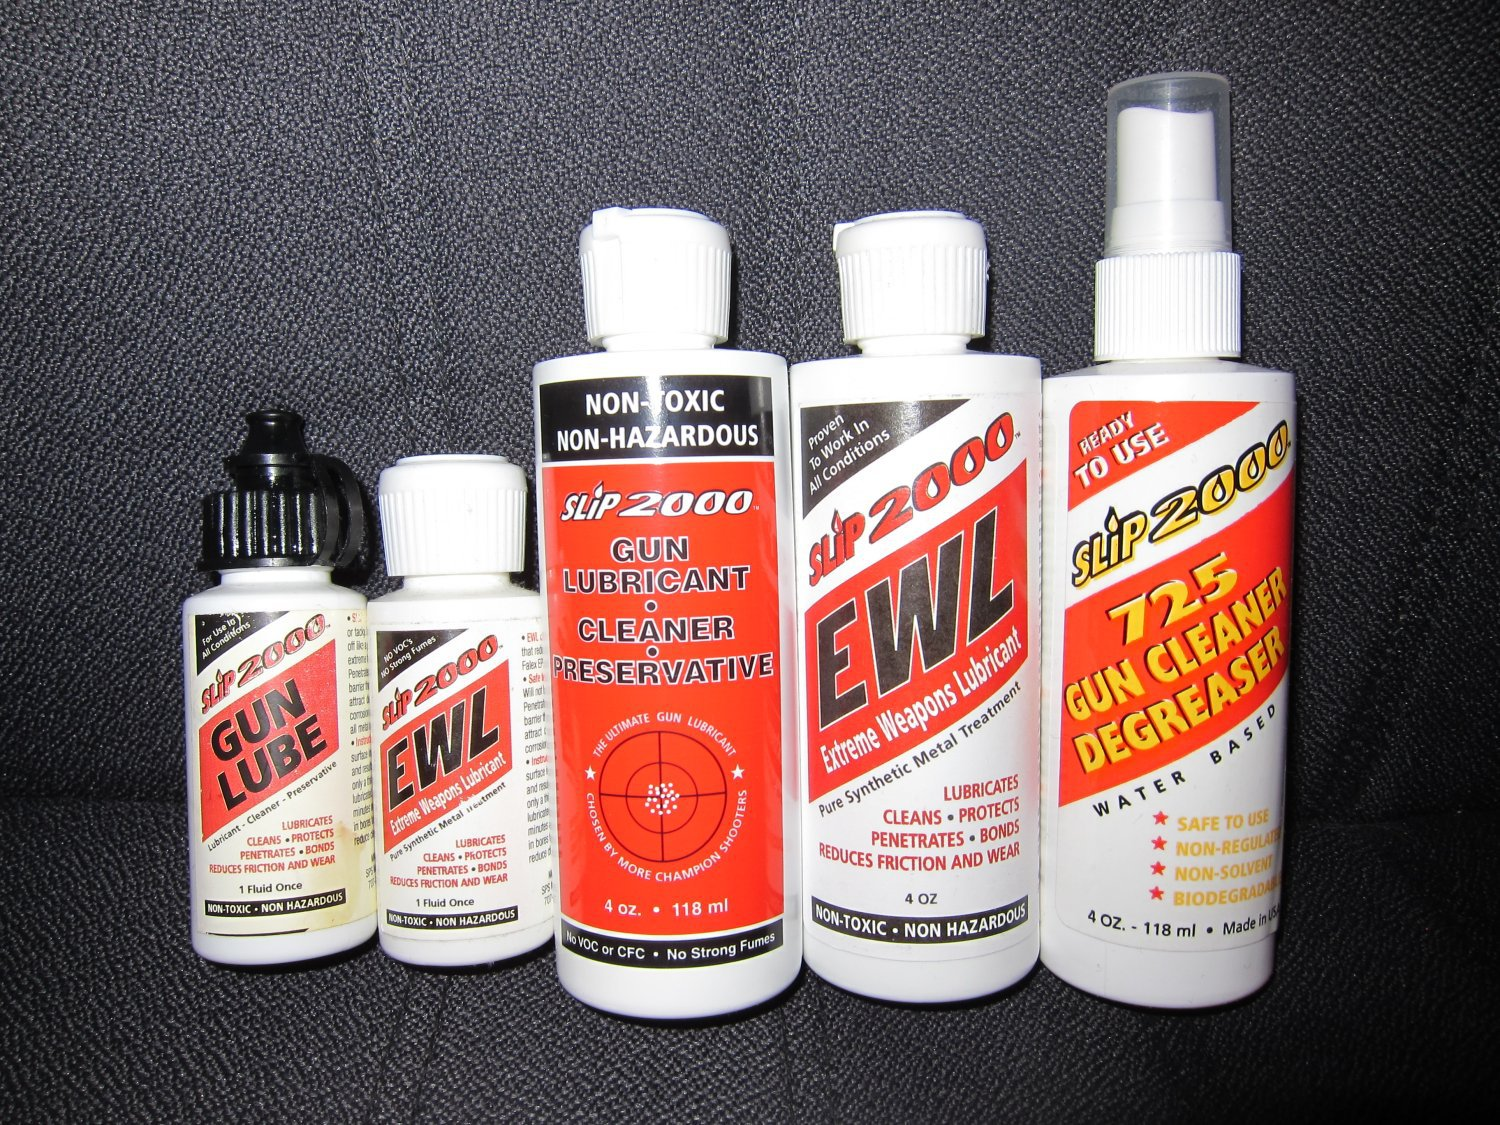 <!--:en-->SLiP2000 Gun Lube and Extreme Weapons Lubricant (EWL) Advanced, High-Performance Synthetic Lubricants for Semi-Auto and Full-Auto/Select-Fire Tactical Firearms and Infantry Small Arms (Machine Guns!)<!--:-->